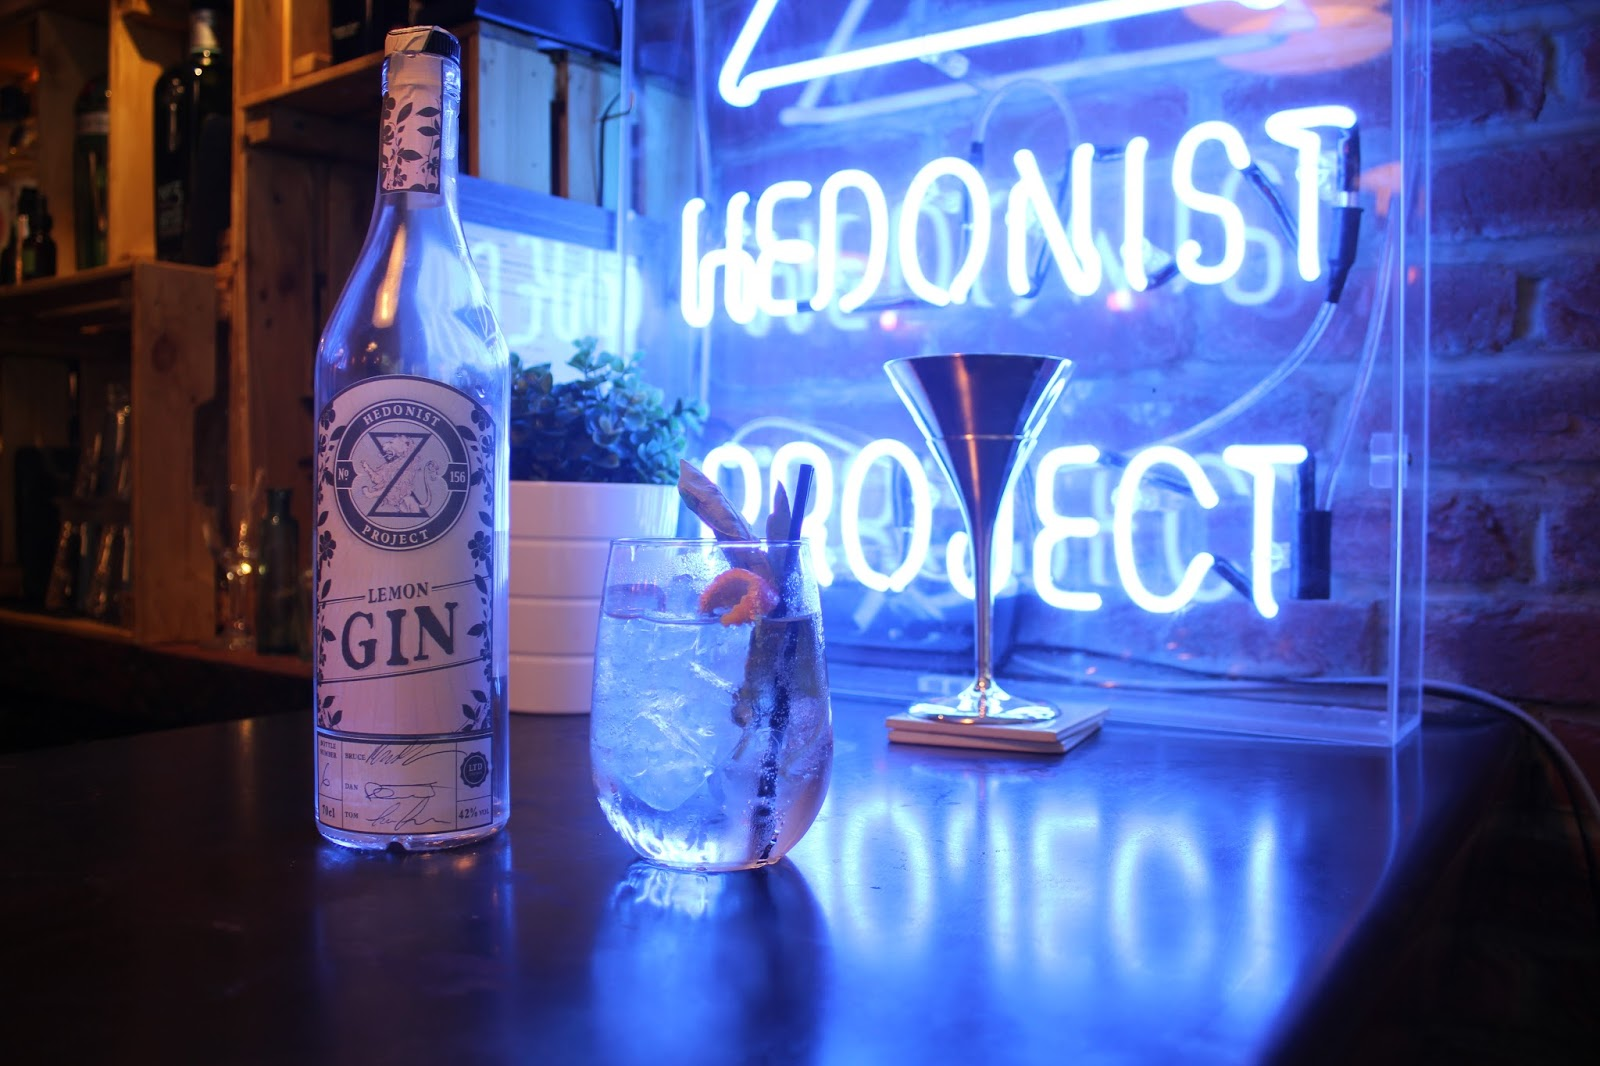 Hedonist Project Leeds